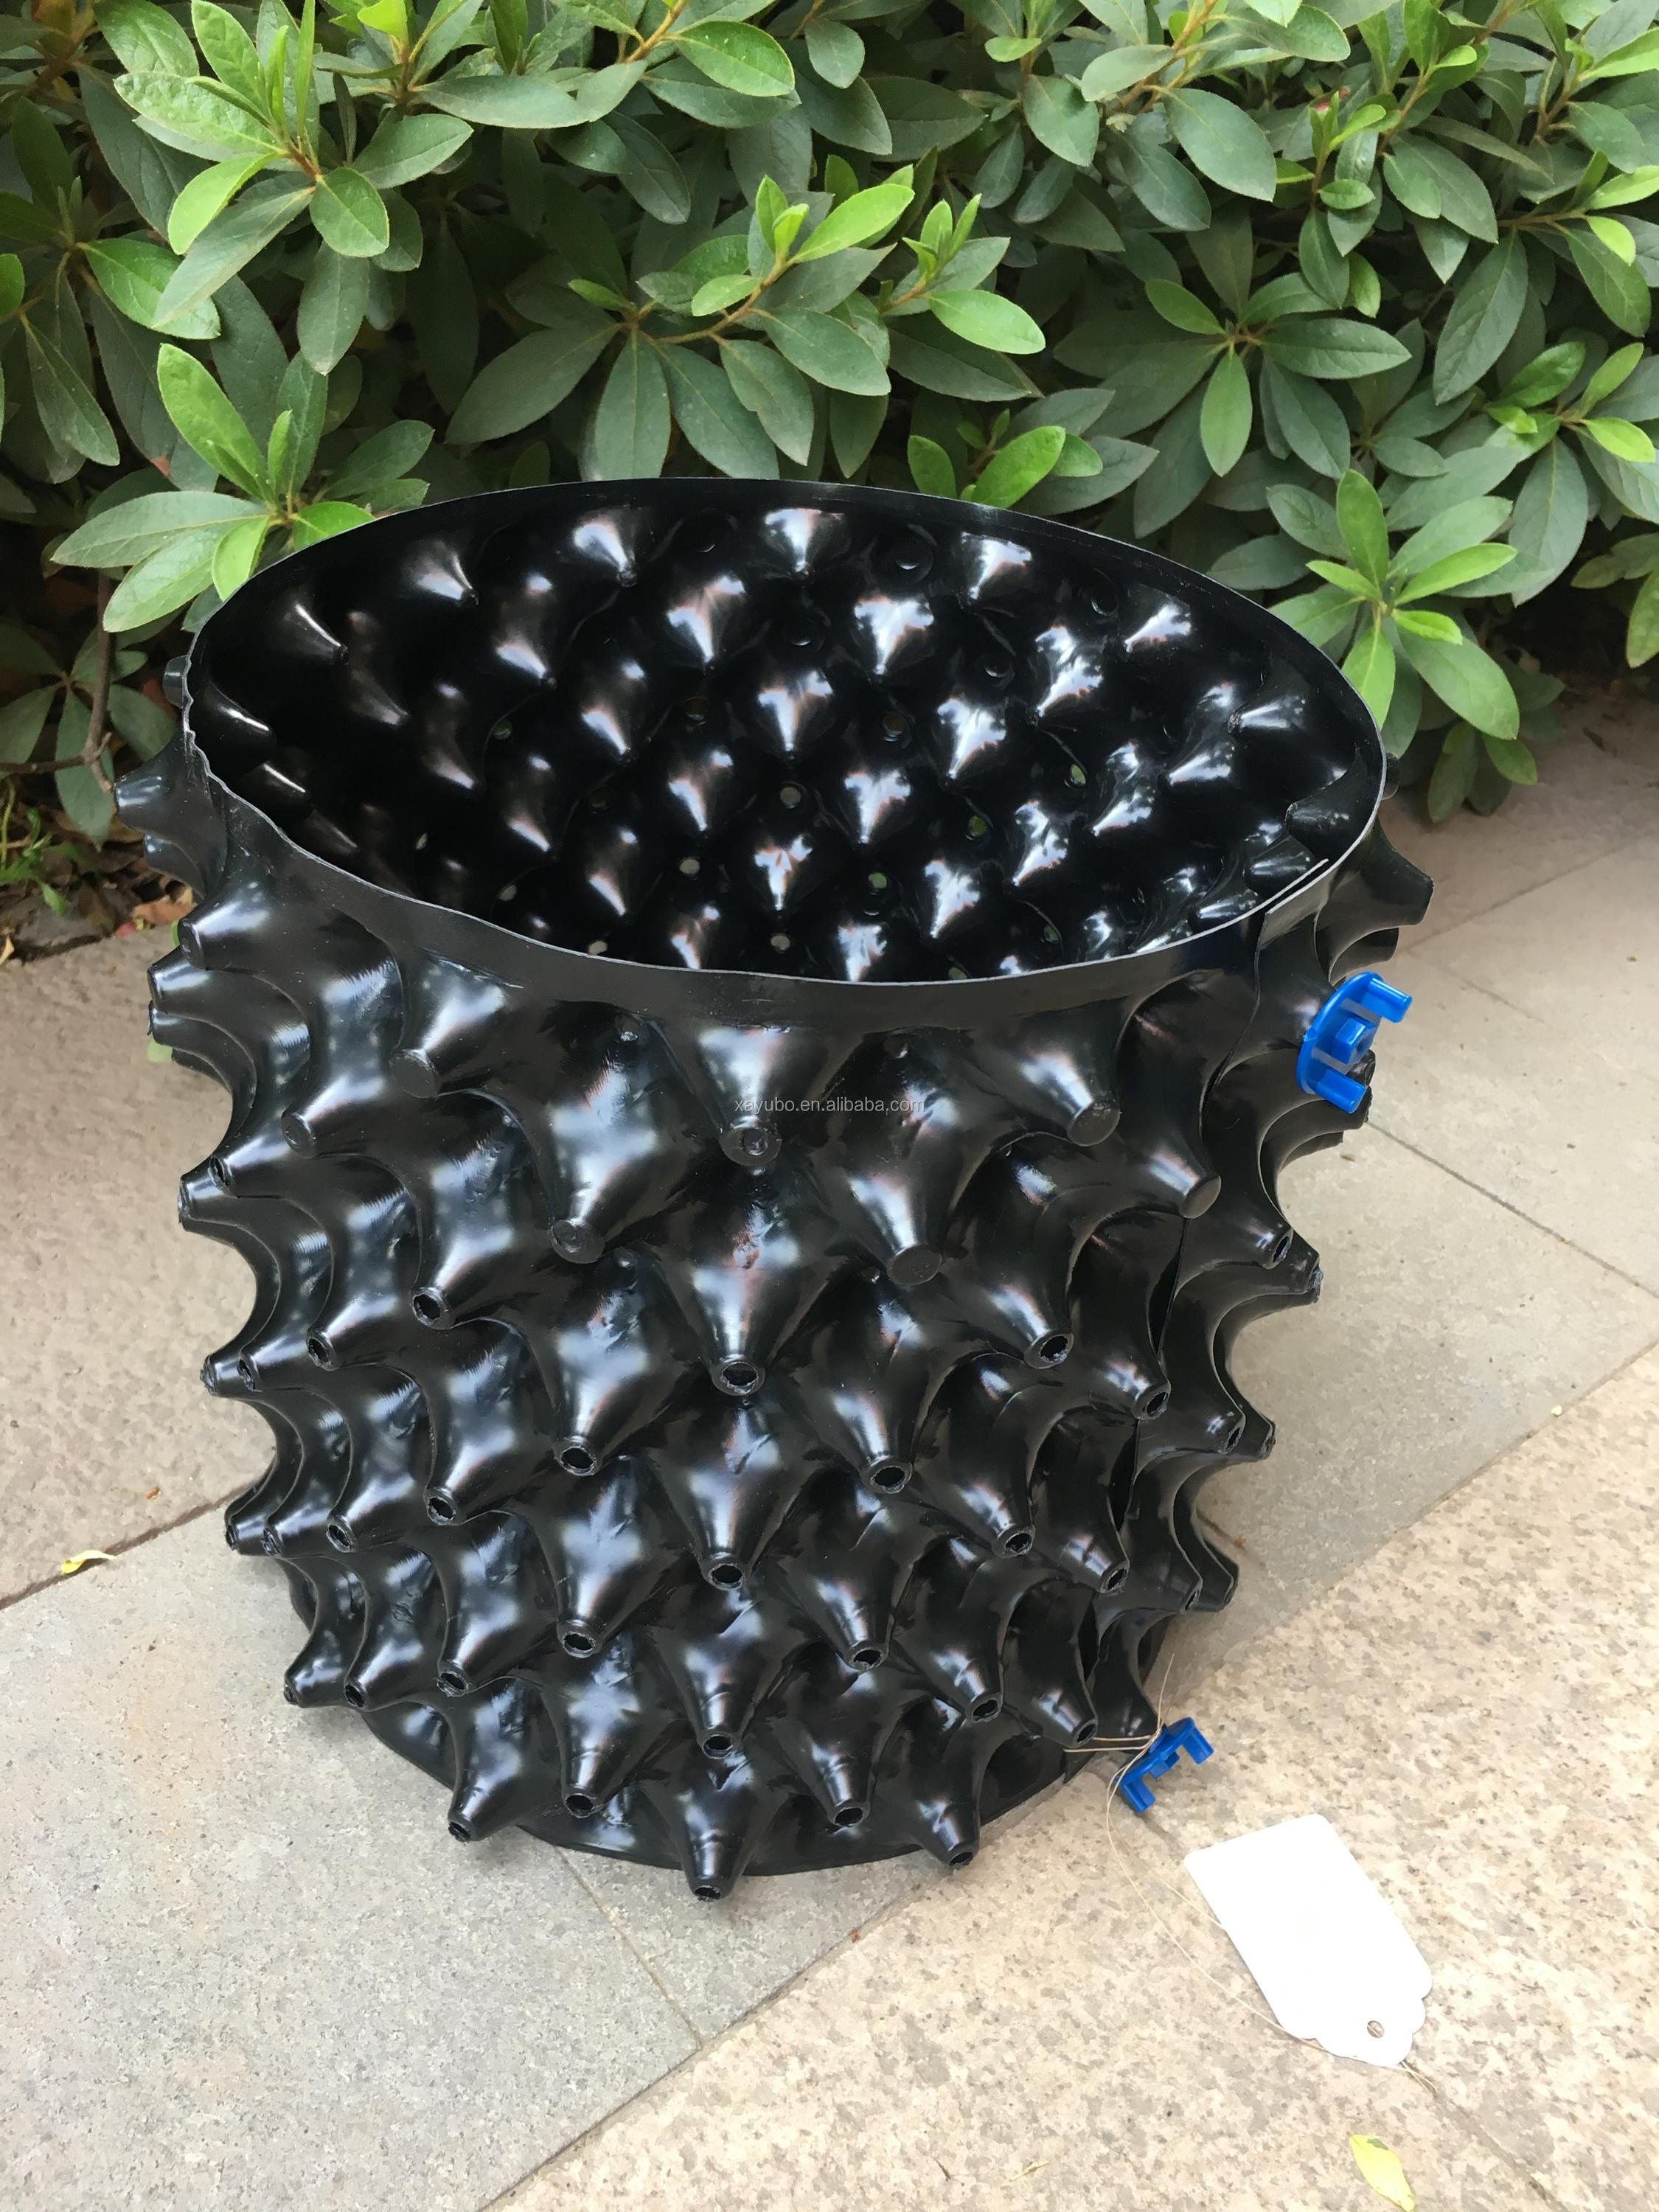 Customized OEM hydroponics air pruning roots pot, control root pot with base for gardening plants